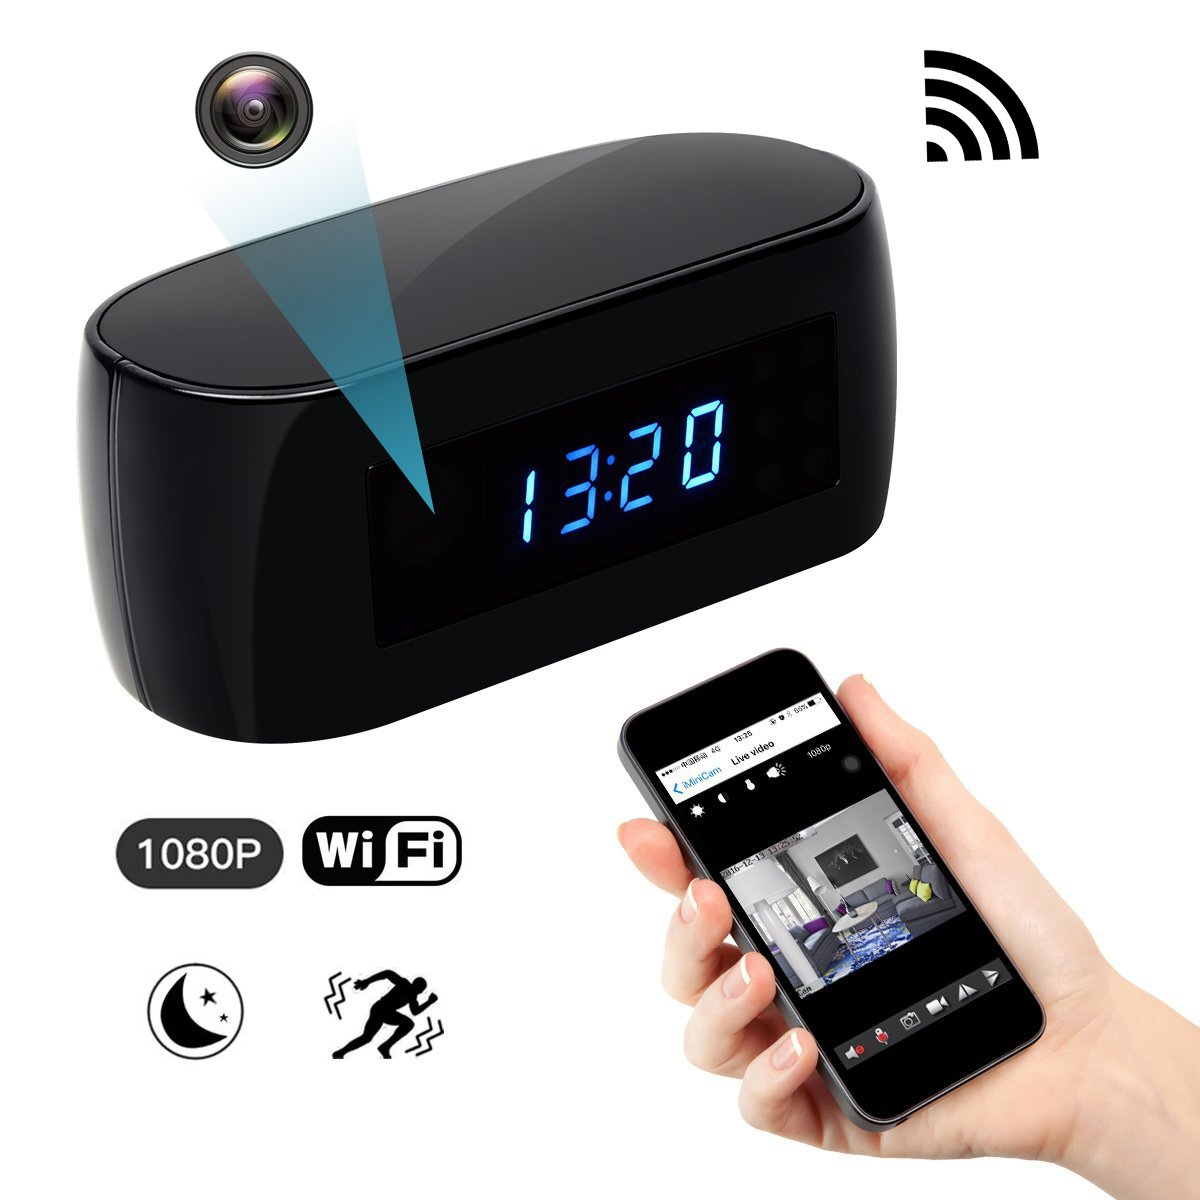 Spy Hidden Wi-Fi Camera, ZDMYING Wireless Alarm clock Security camera HD 1080 Remote View Night Vision Motion Detection Loop Recording for Home Office Car Nanny Surveillance Camera by ZDMYING